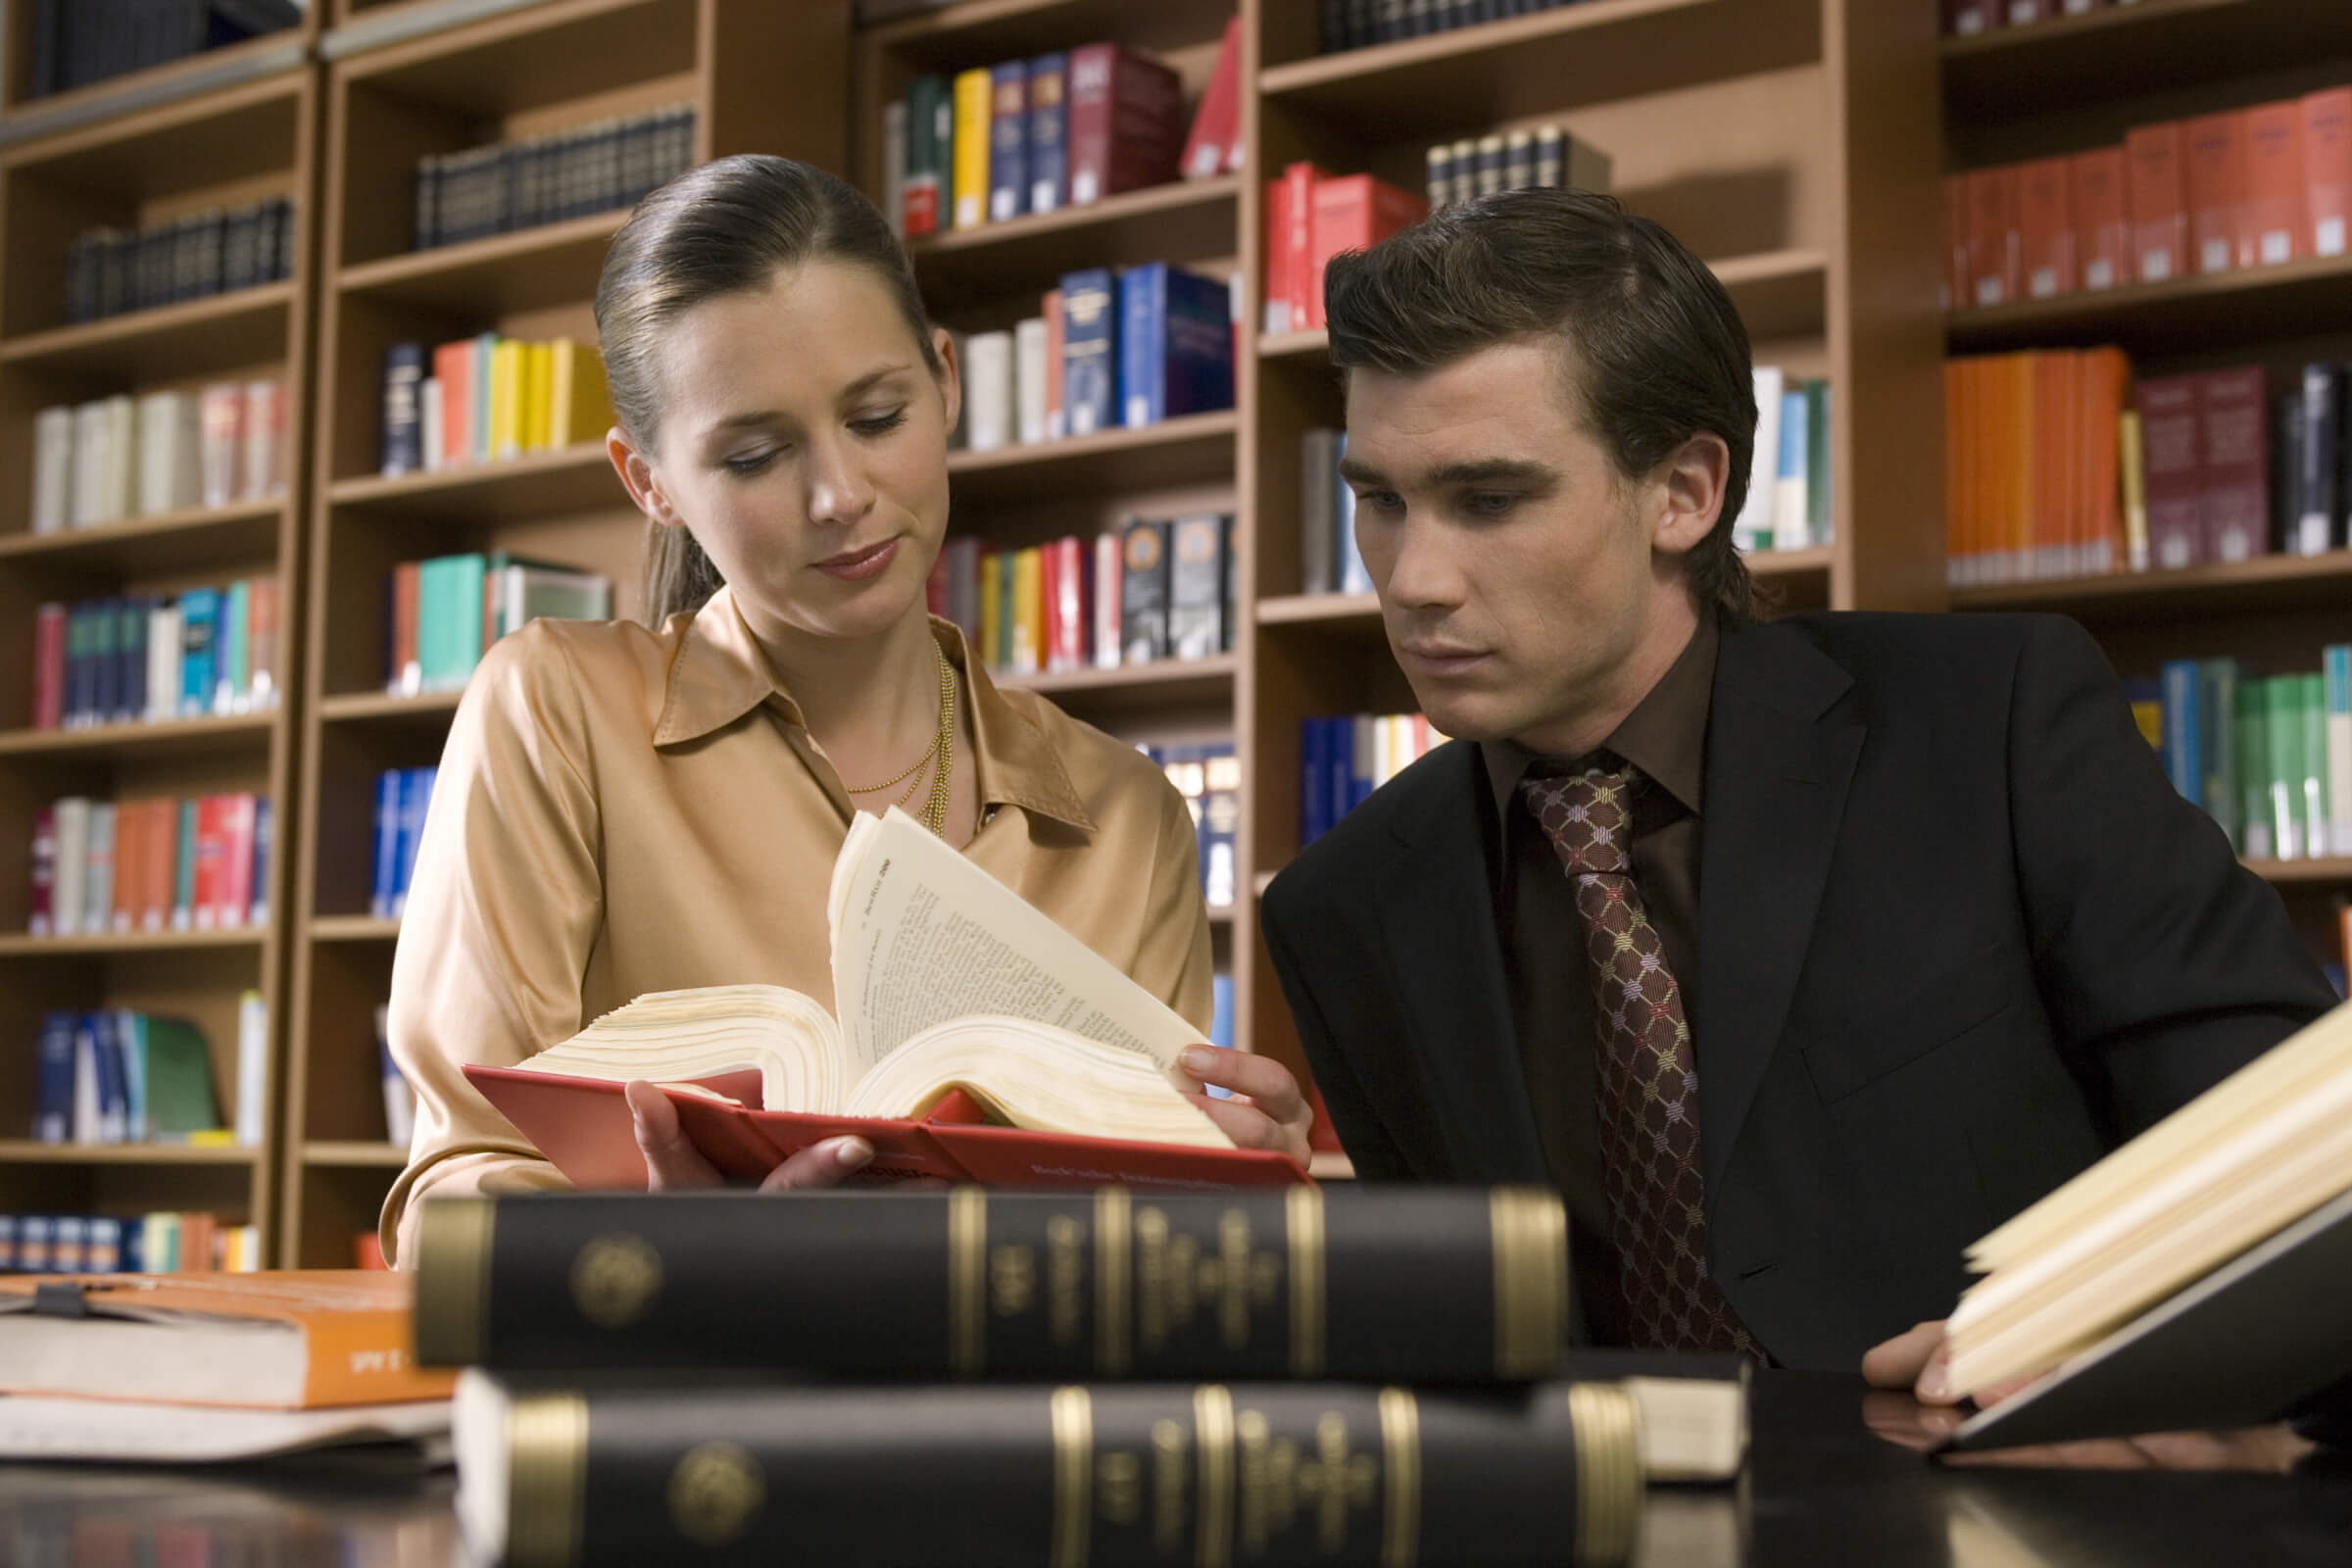 Law students in a library